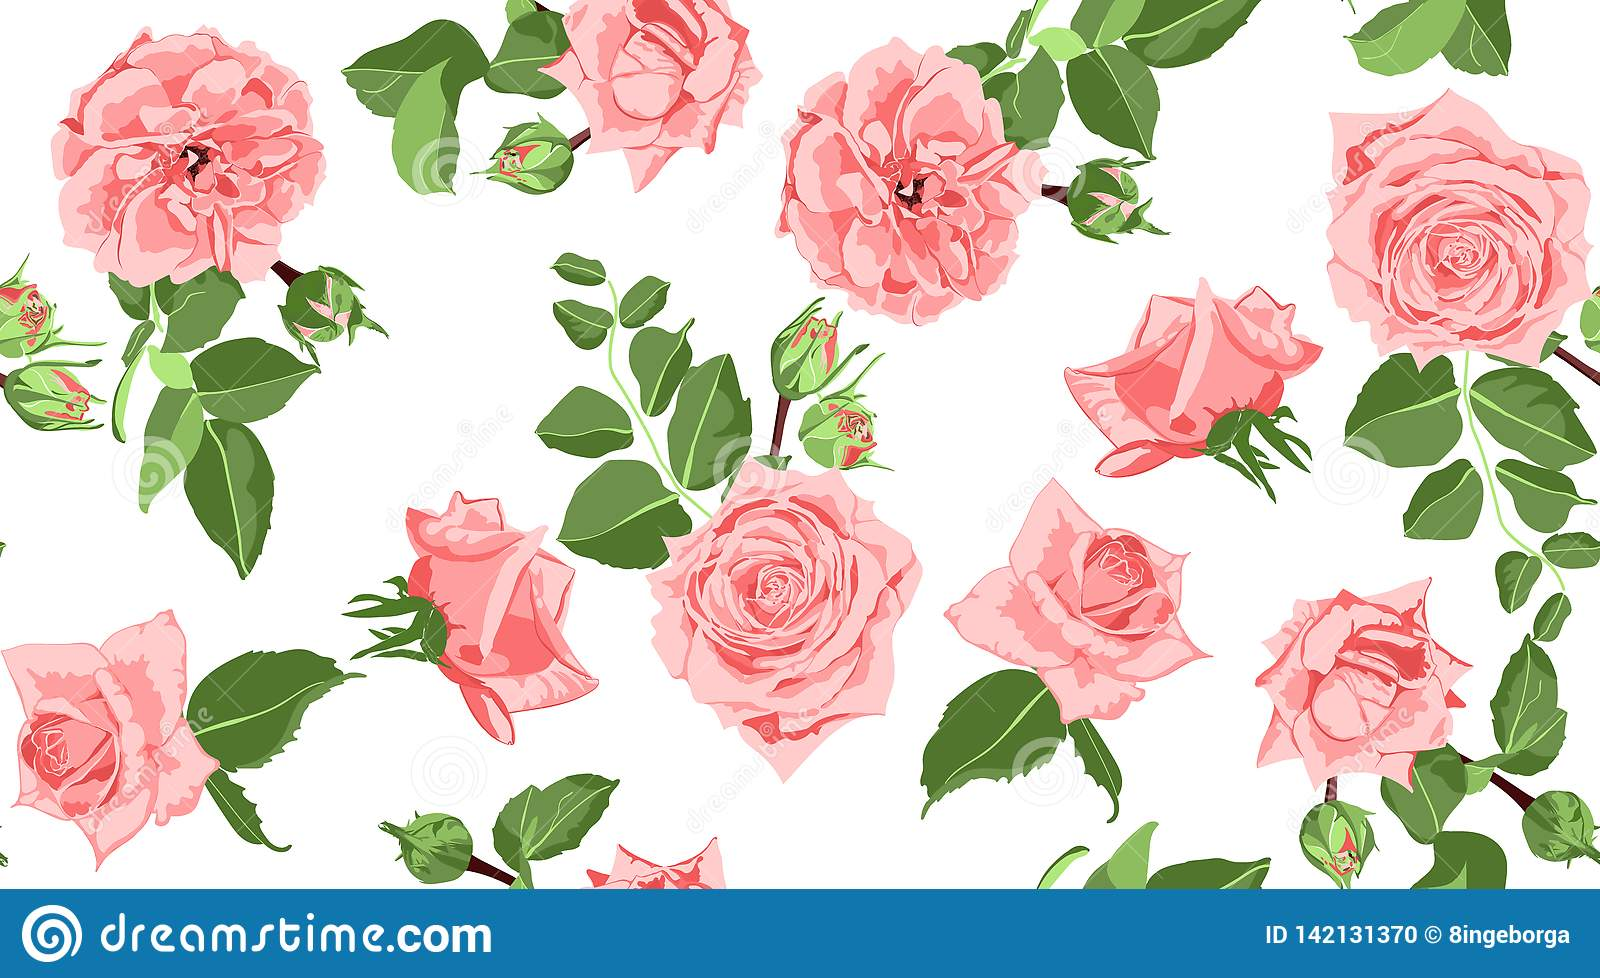 Seamless Floral Rose Pattern with Leaves.